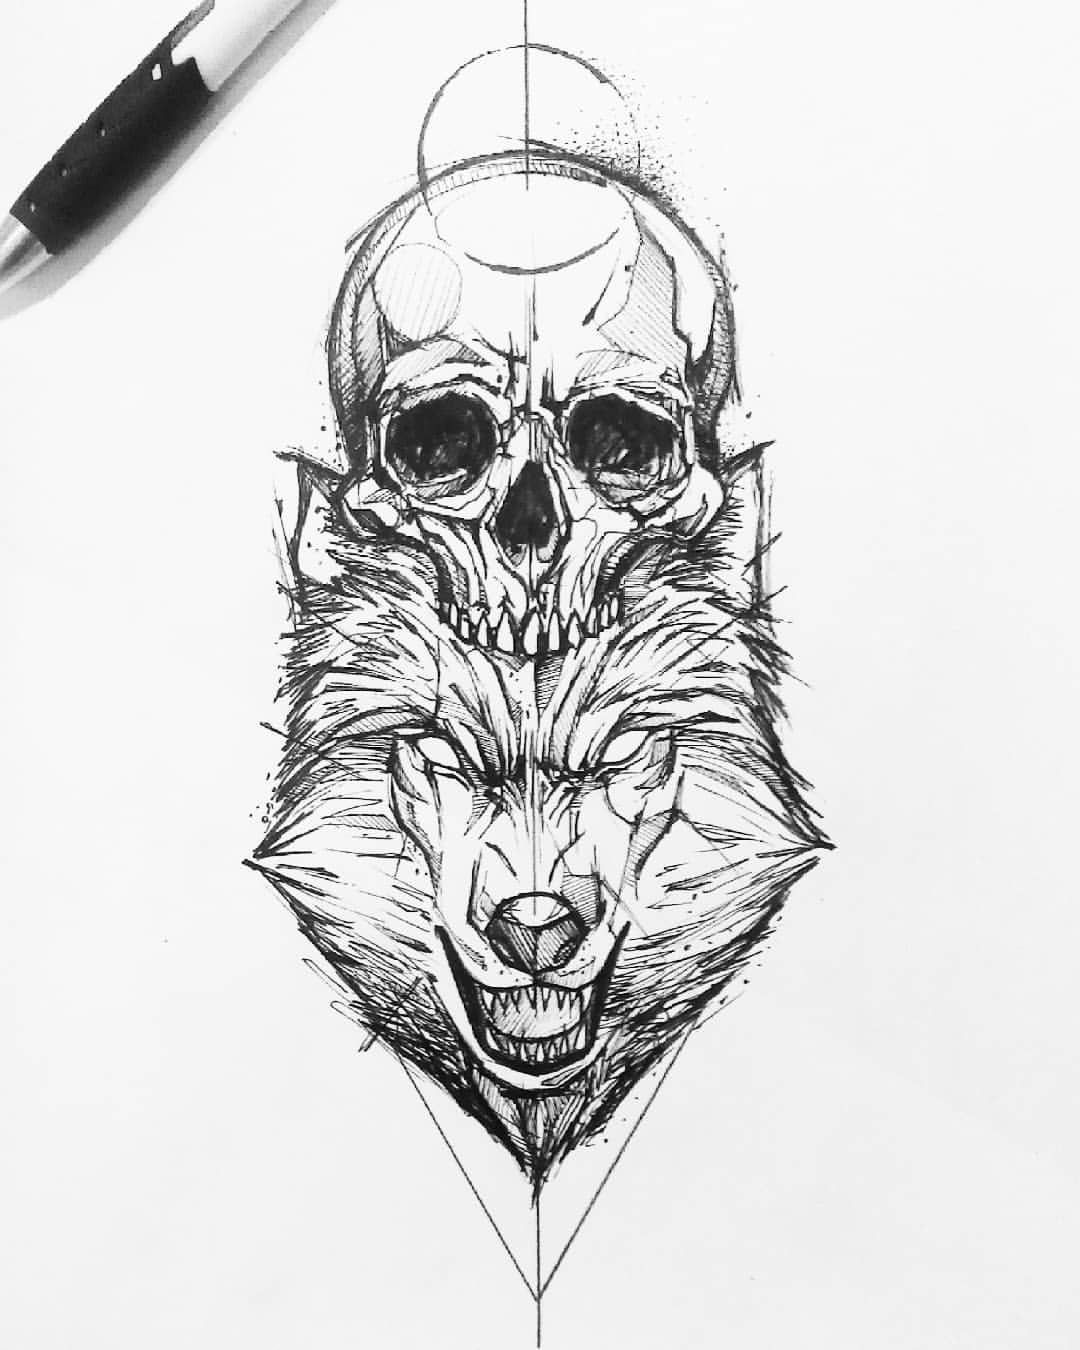 232 Curtidas 4 Comentarios Ricardo F Schmidt Ricardoschmidt No Instagram Lobo Finalizado Do Michae Wolf Tattoo Design Body Art Tattoos Wolf Tattoos